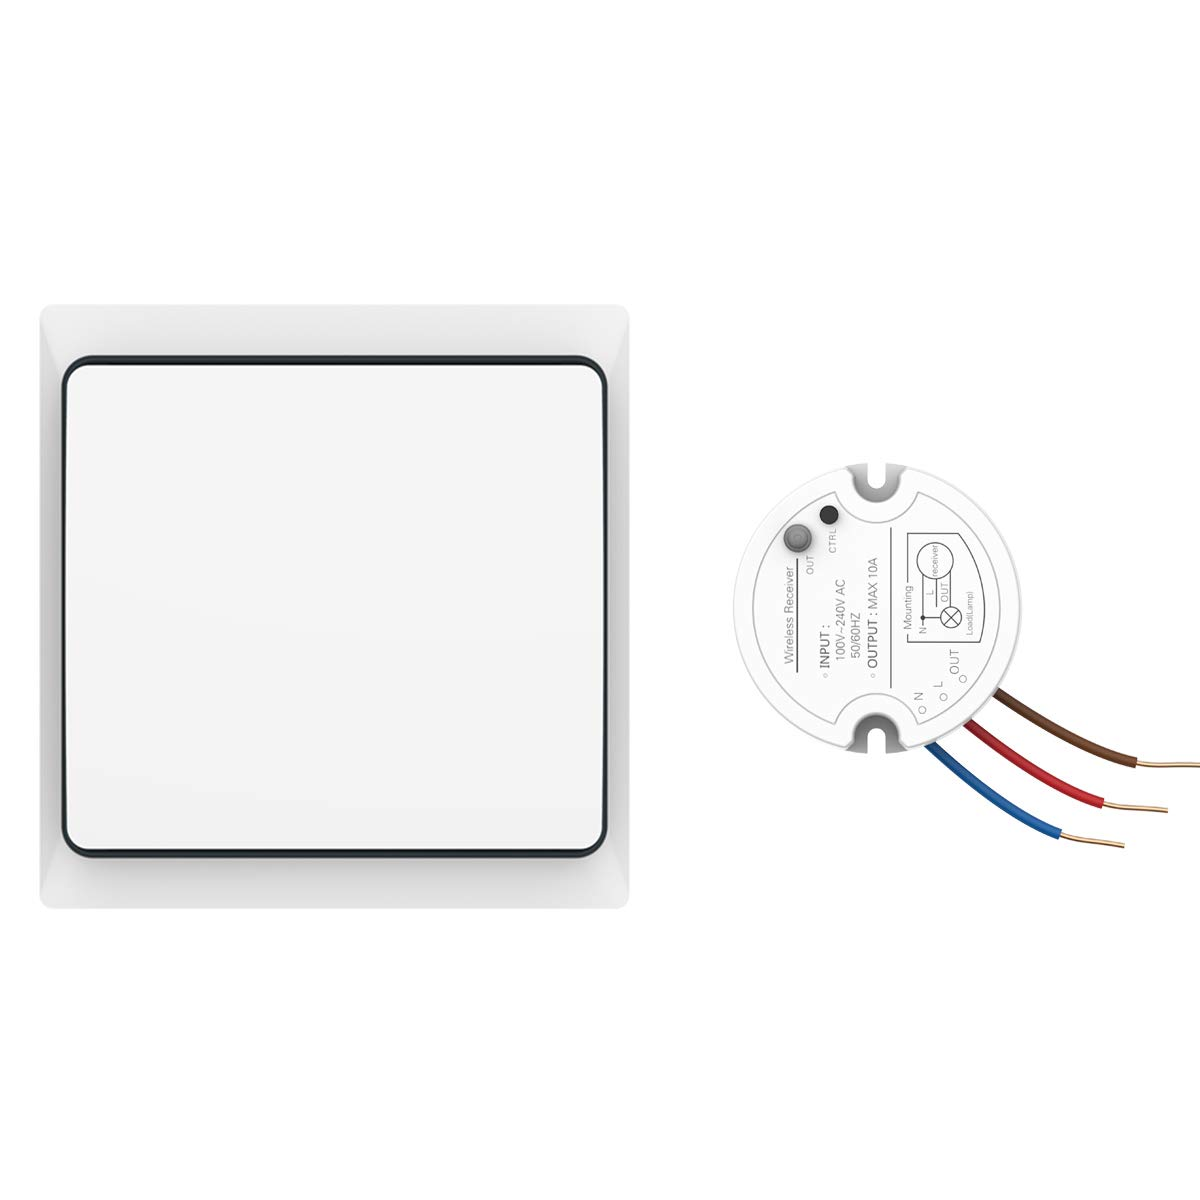 Crelander Self-powered Waterproof Wireless Light Switch Kit On//off Control Single Pole Wall Switch One Receiver Module Lvr900 WS200+LVR900